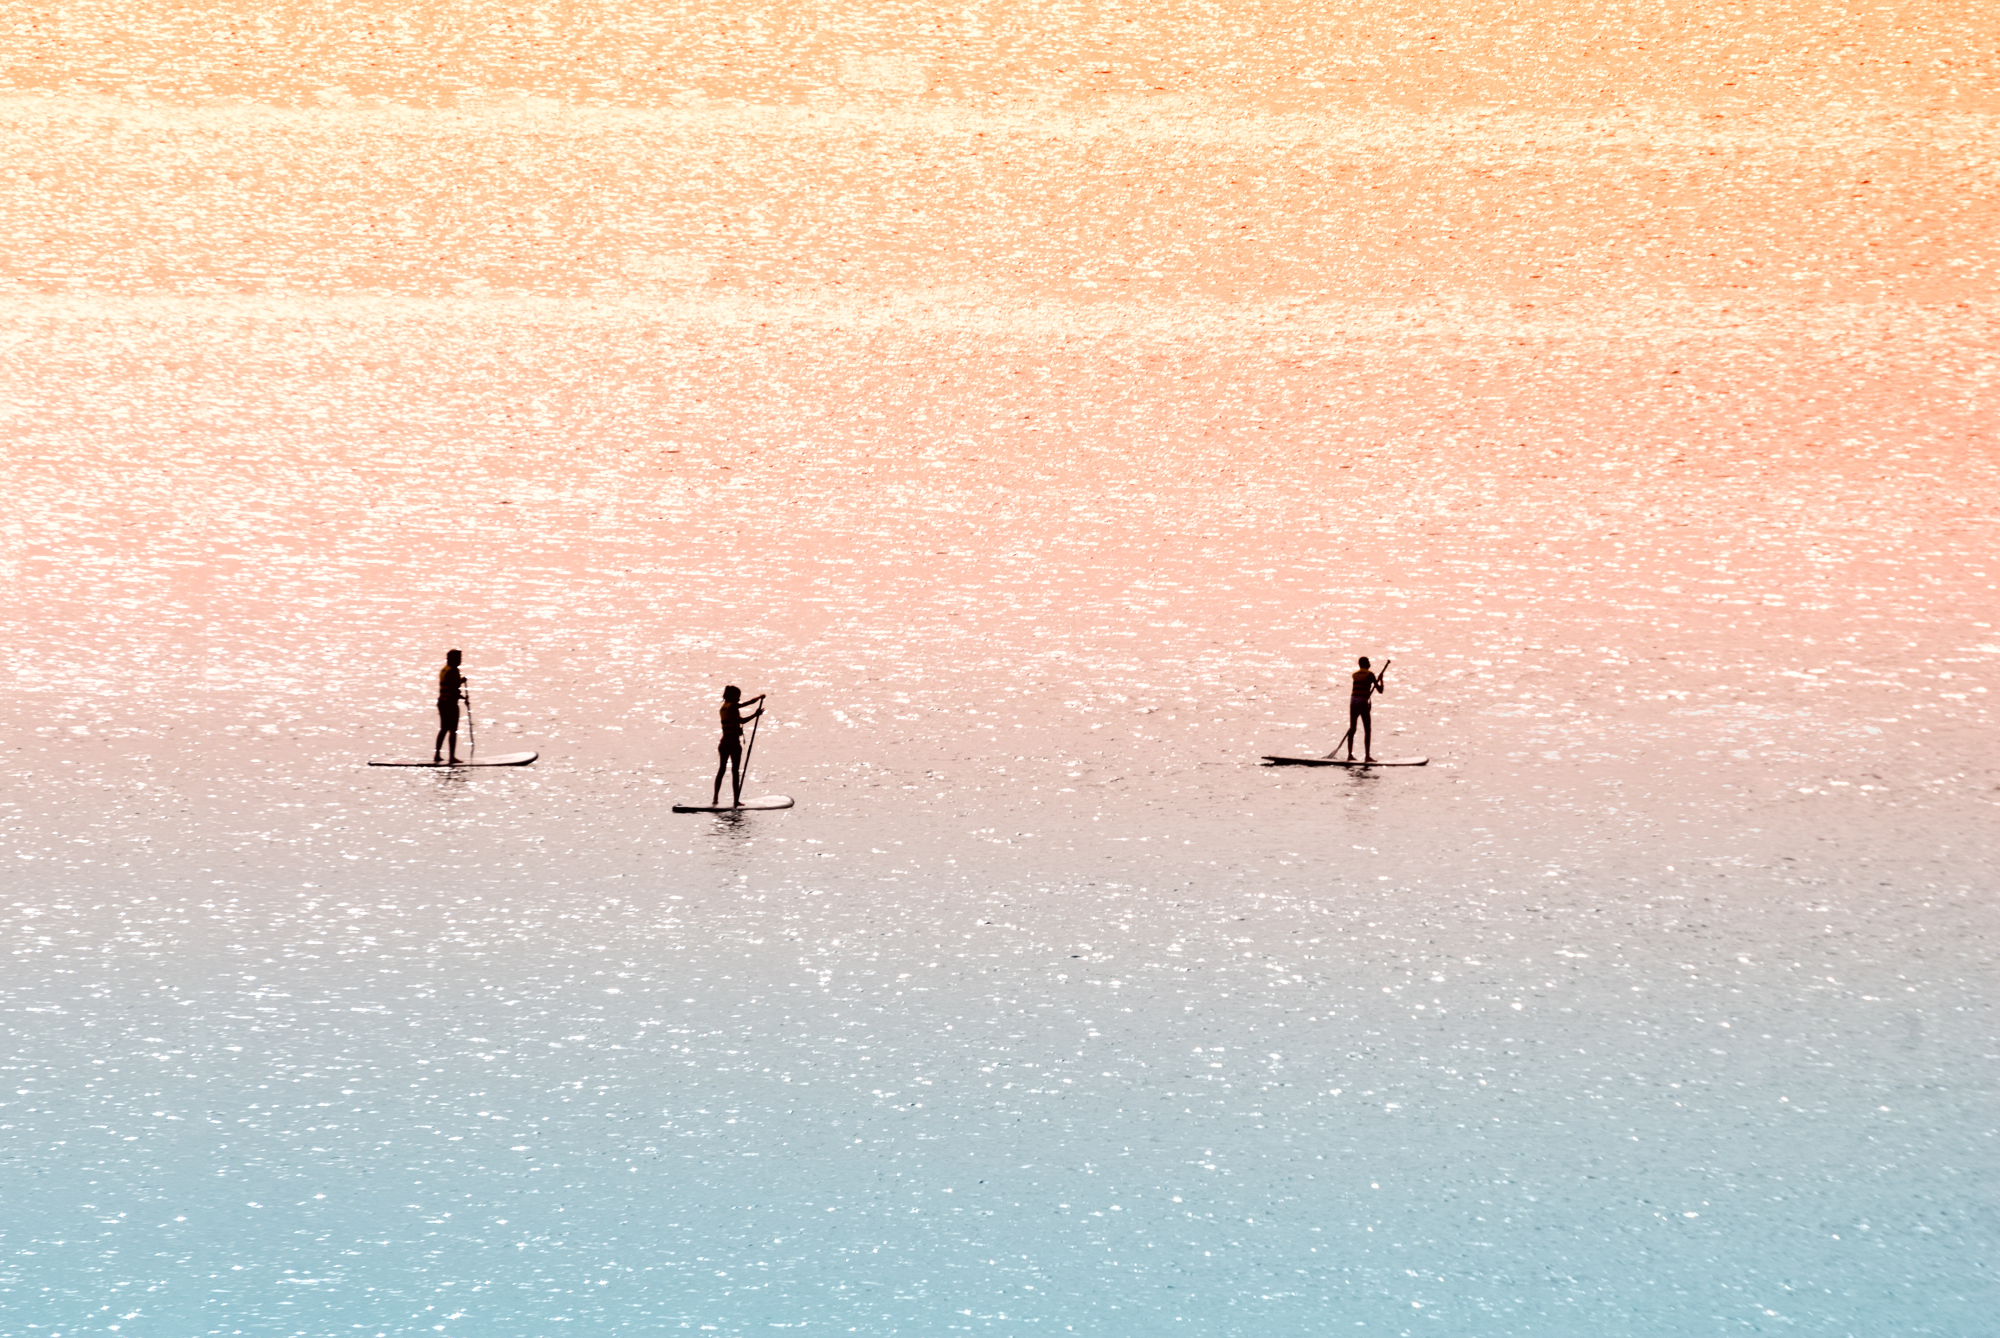 Standup paddle surfers example image 1